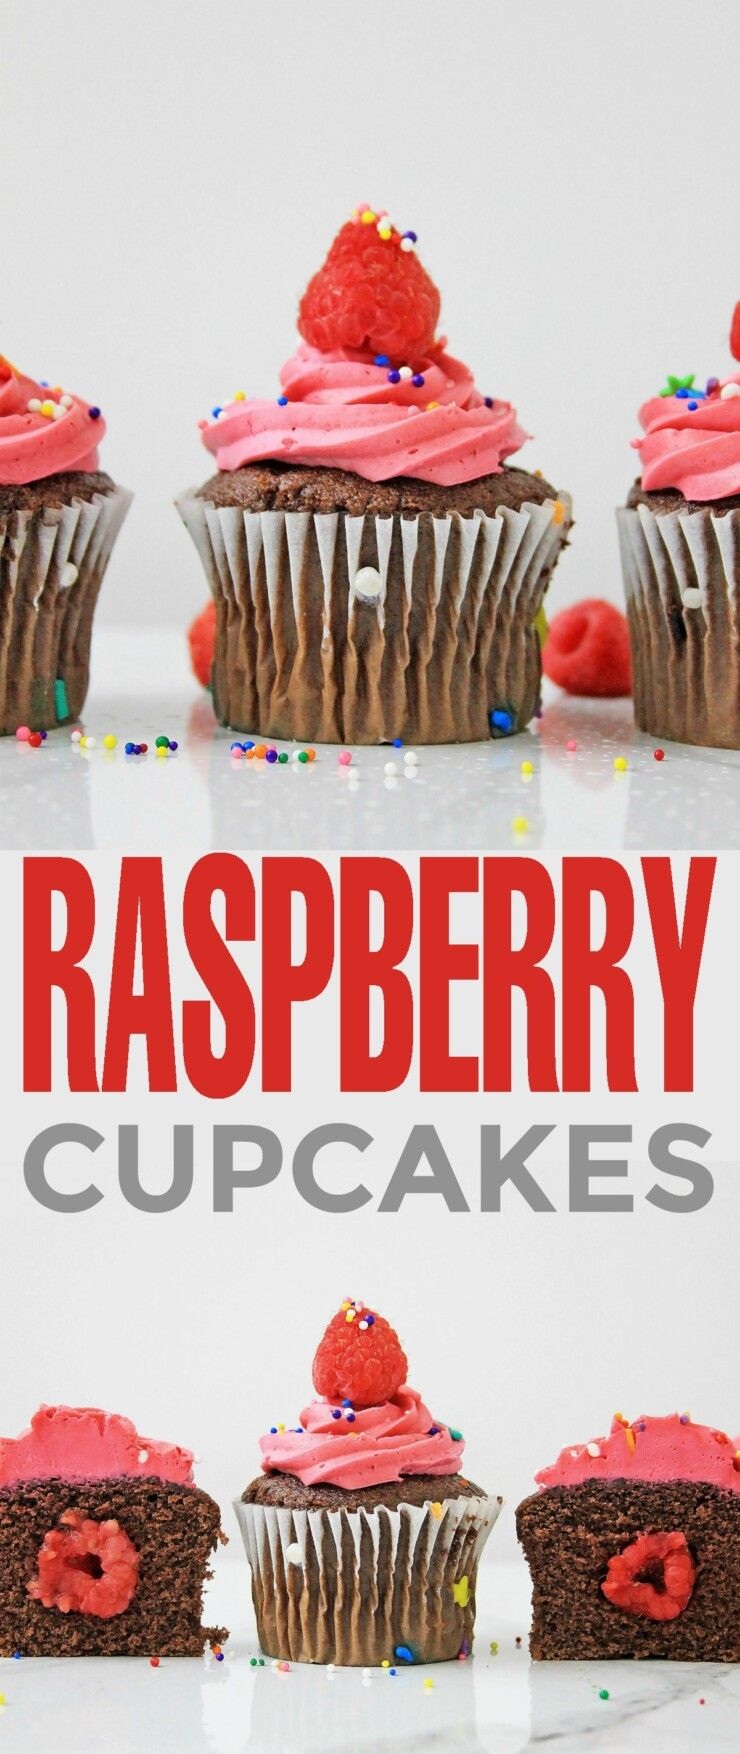 These Raspberry Cupcakes Will Take You Back To Summer Time They Re So Good Easy To Make And A Real Dessert Recipes Easy Raspberry Cupcakes Cupcake Recipes